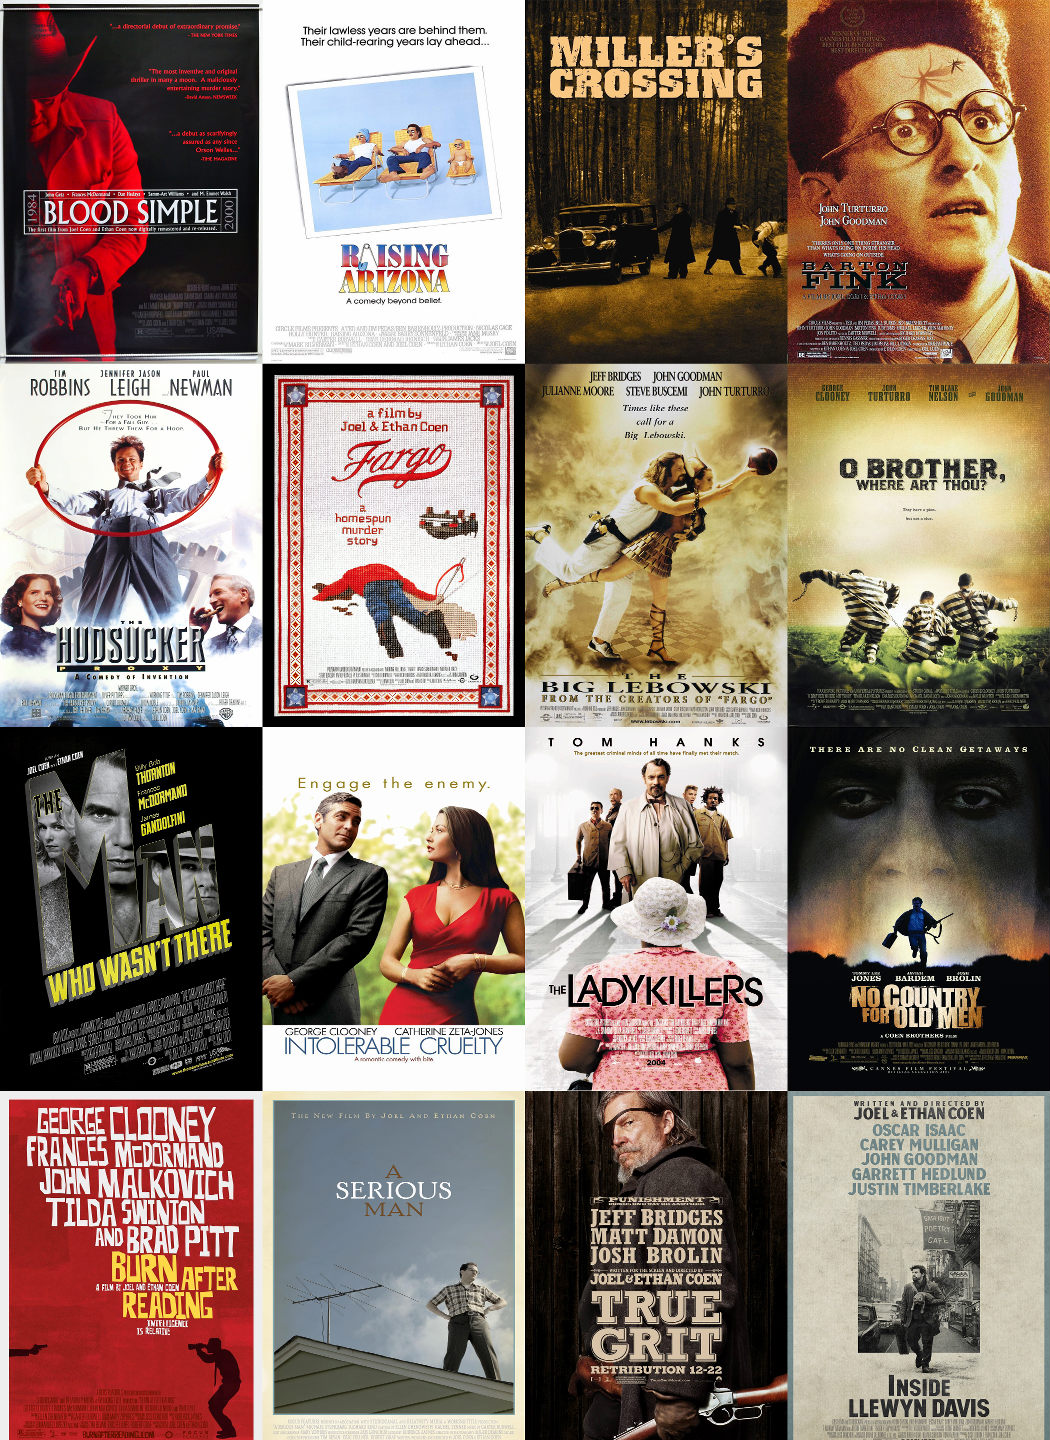 The Coen Brothers filmography